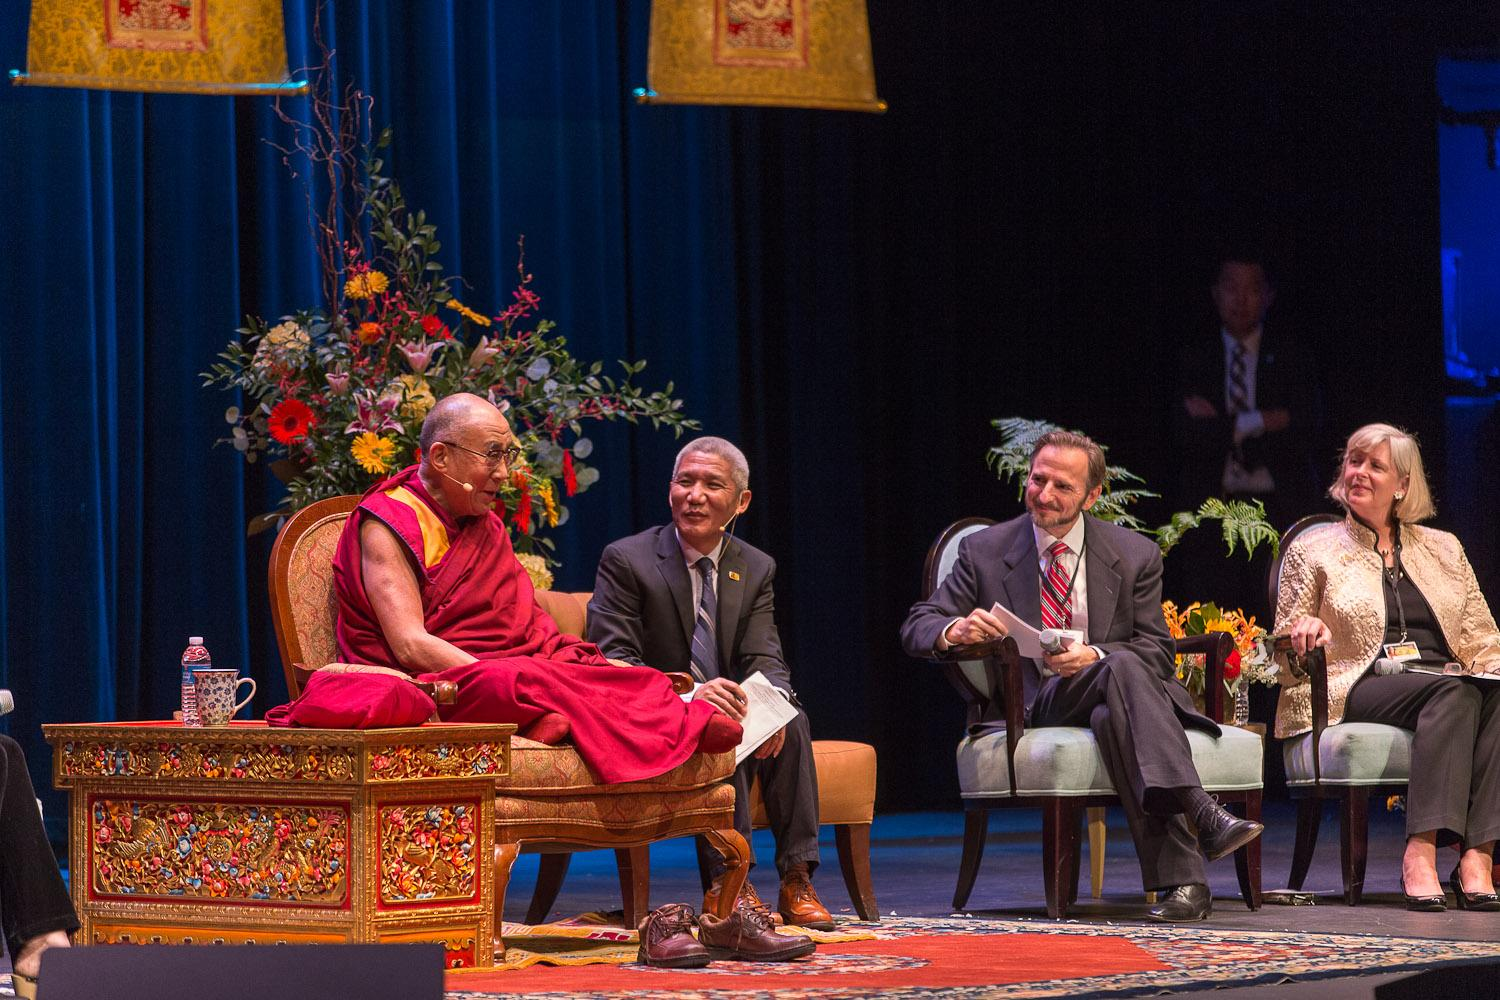 Dalai Lama Exchanges Ideas, Laughter With Health System Clinicians